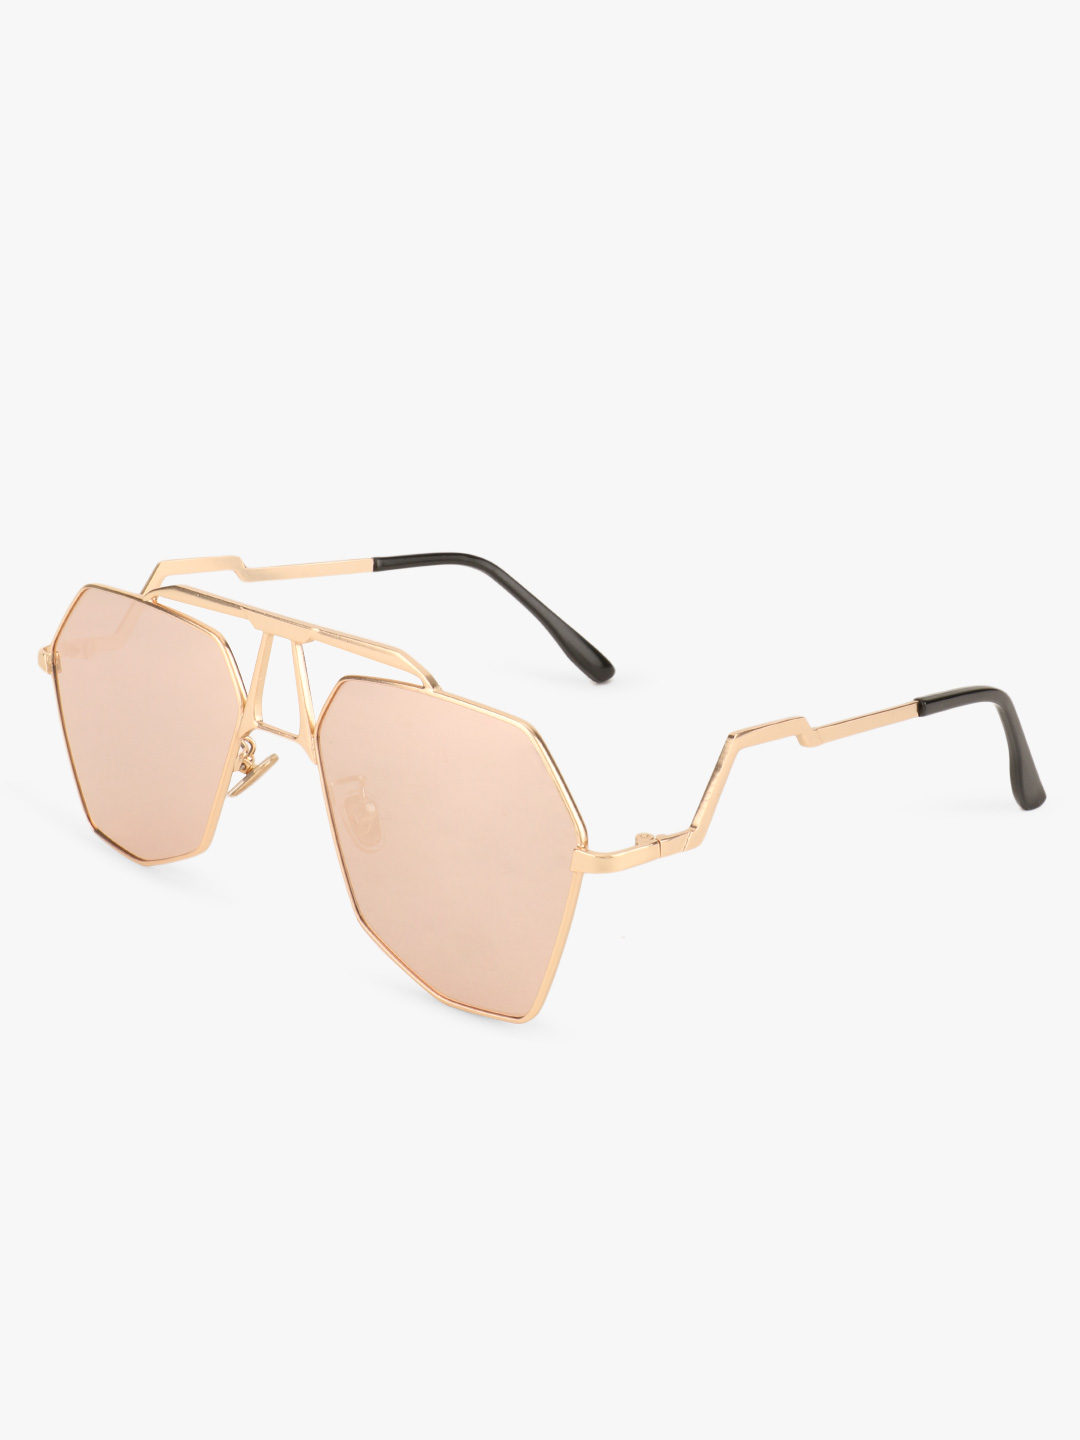 Style Fiesta Pink Retro Tinted Brow Bar Sunglasses 1